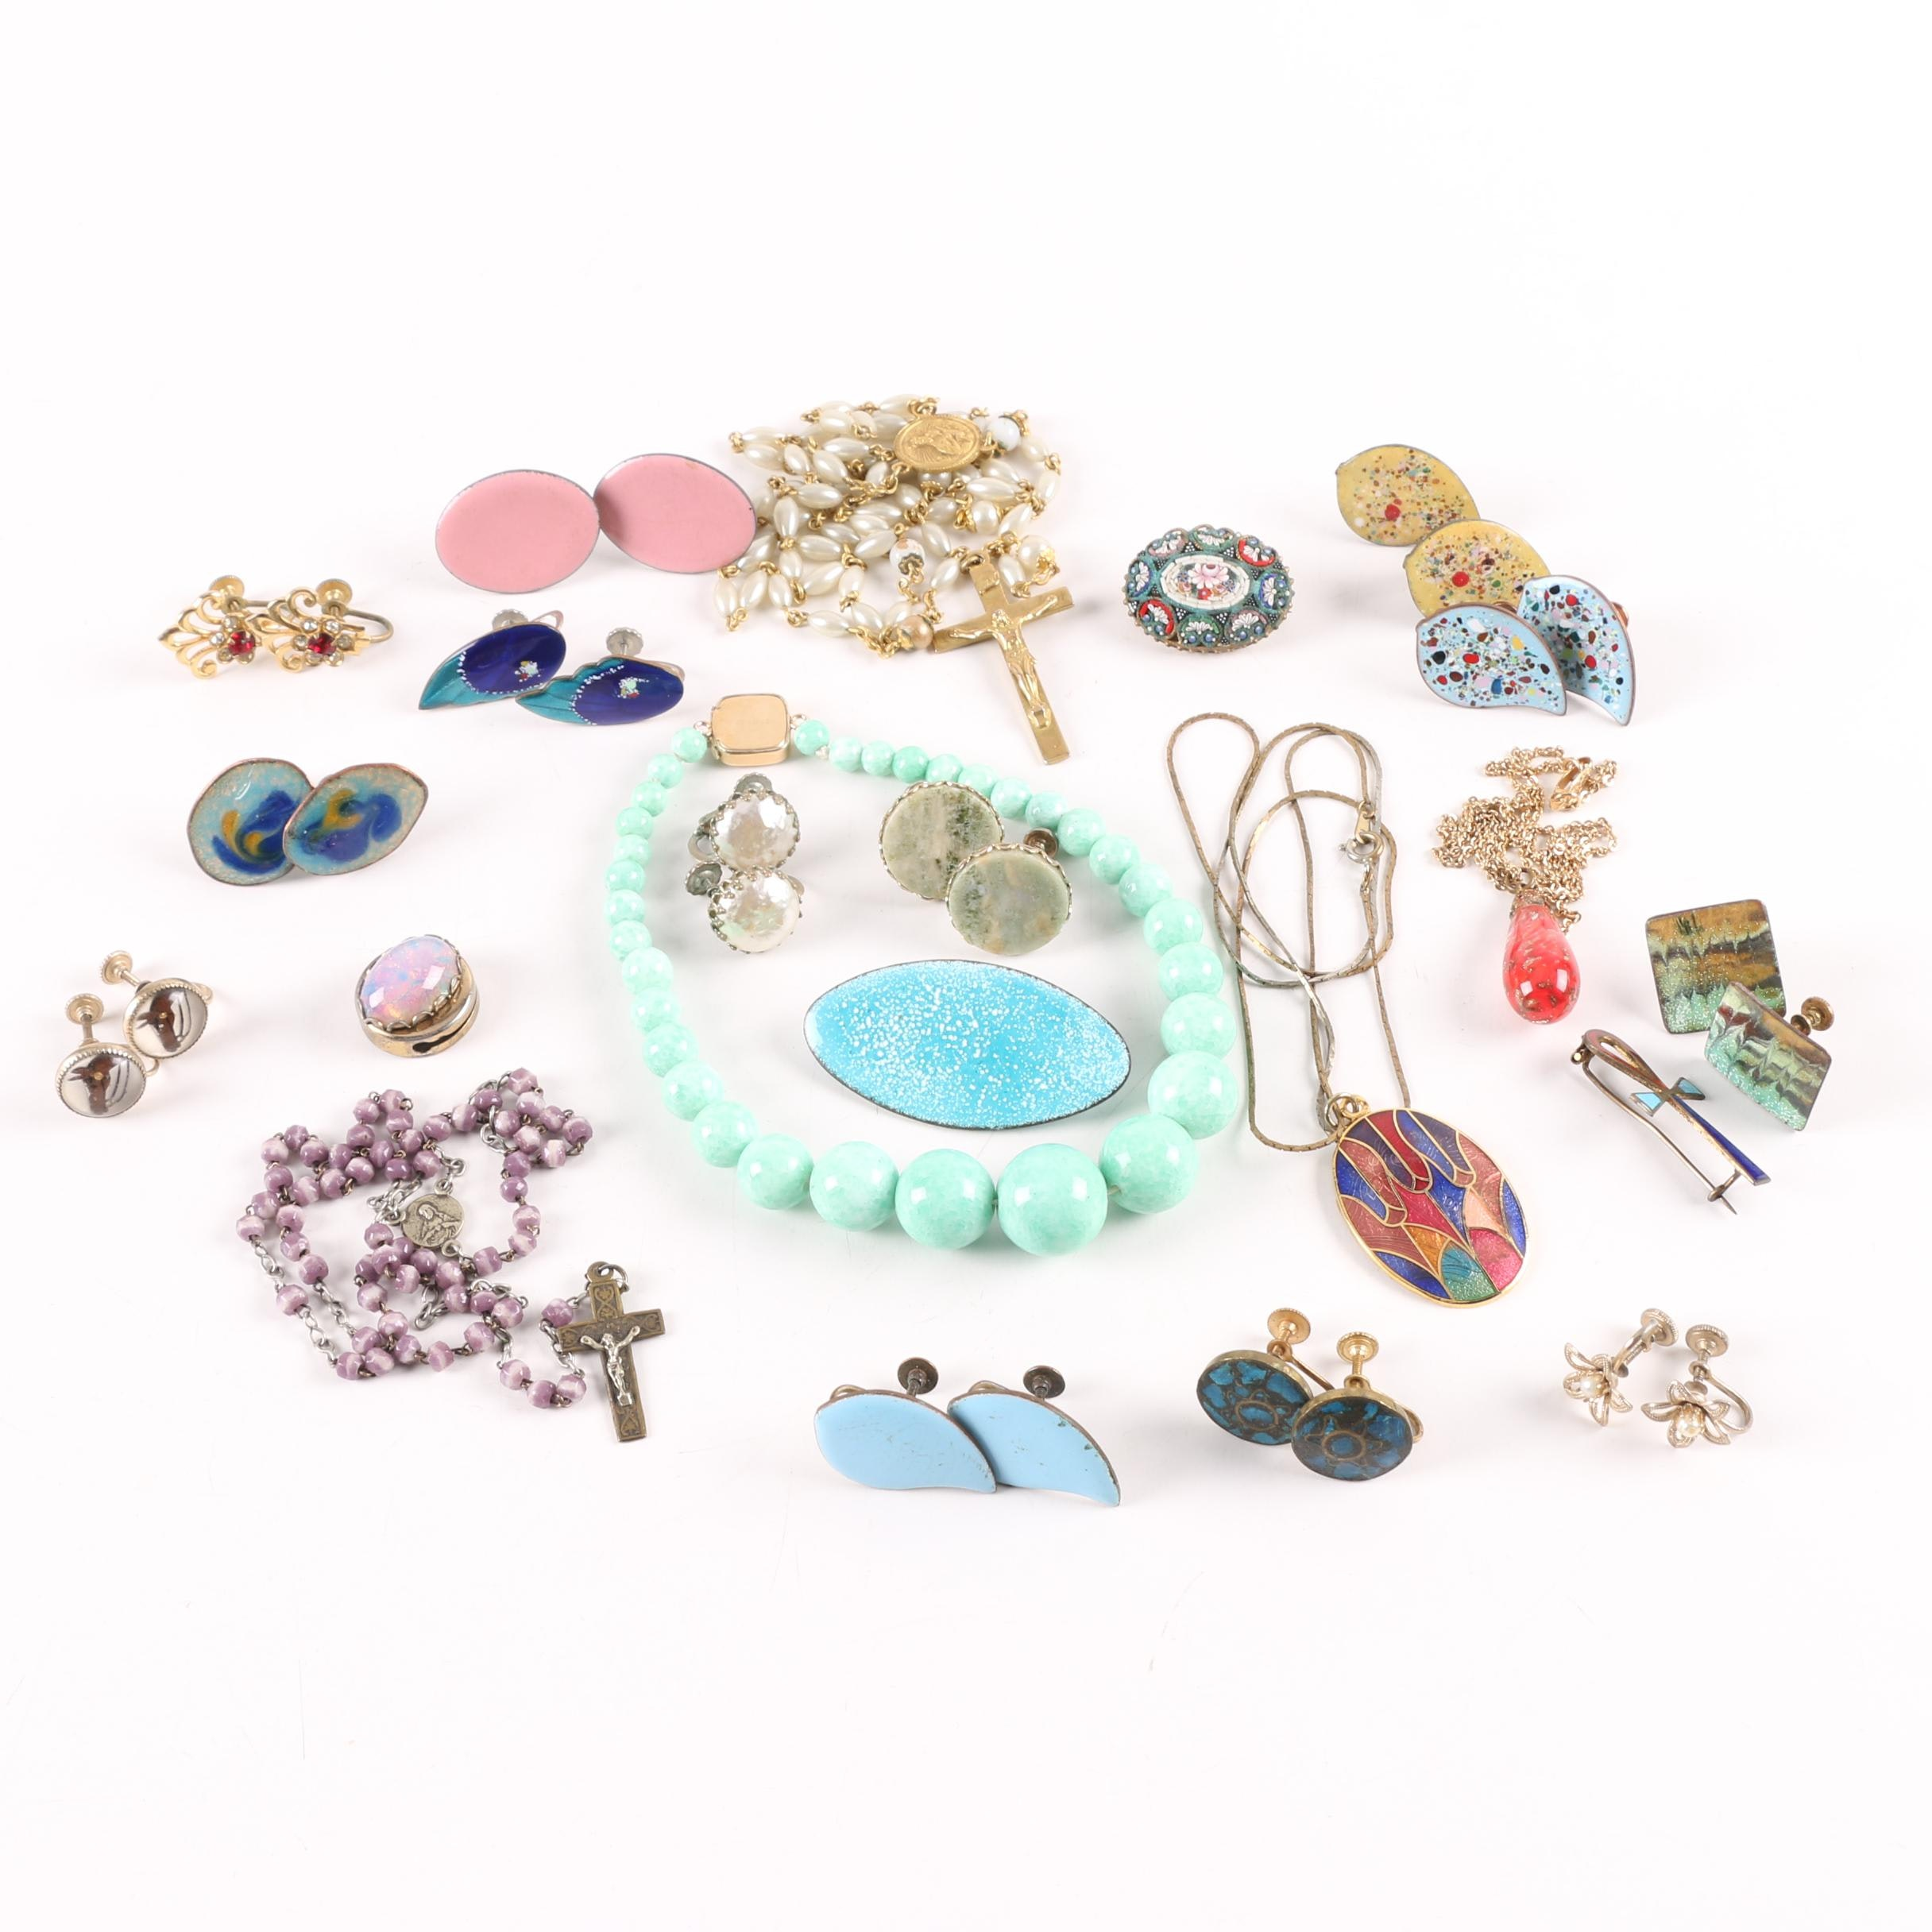 Jewelry Assortment Including Rosary